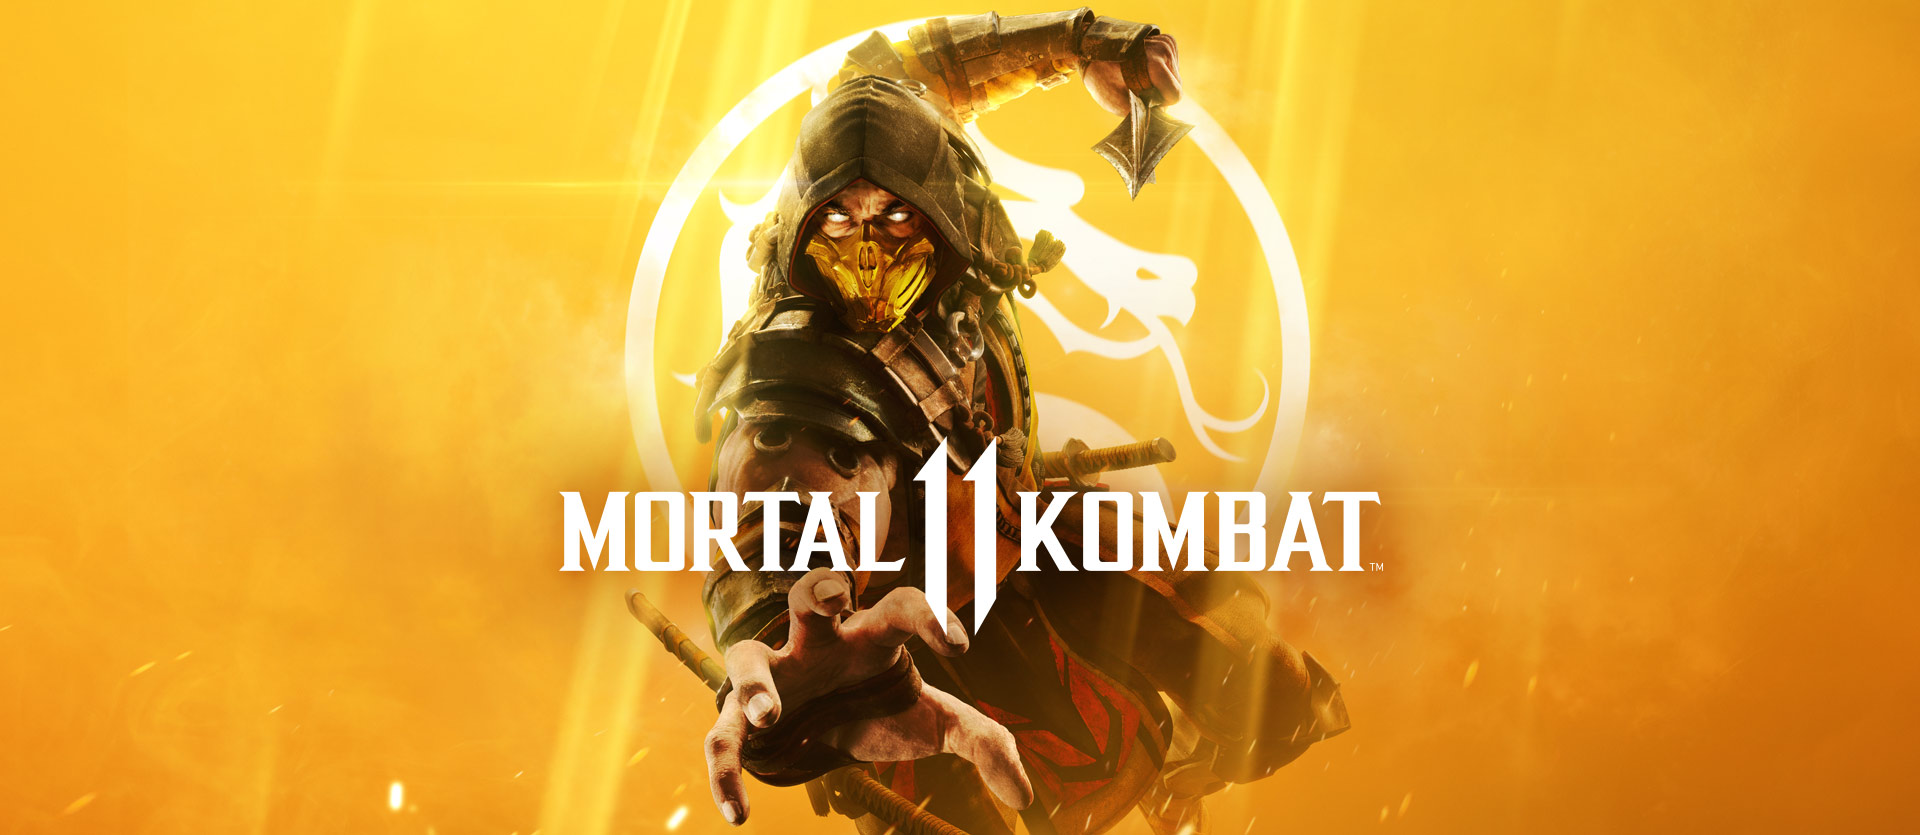 Mortal Kombat 11, Front view of Scorpion reaching out with his right hand